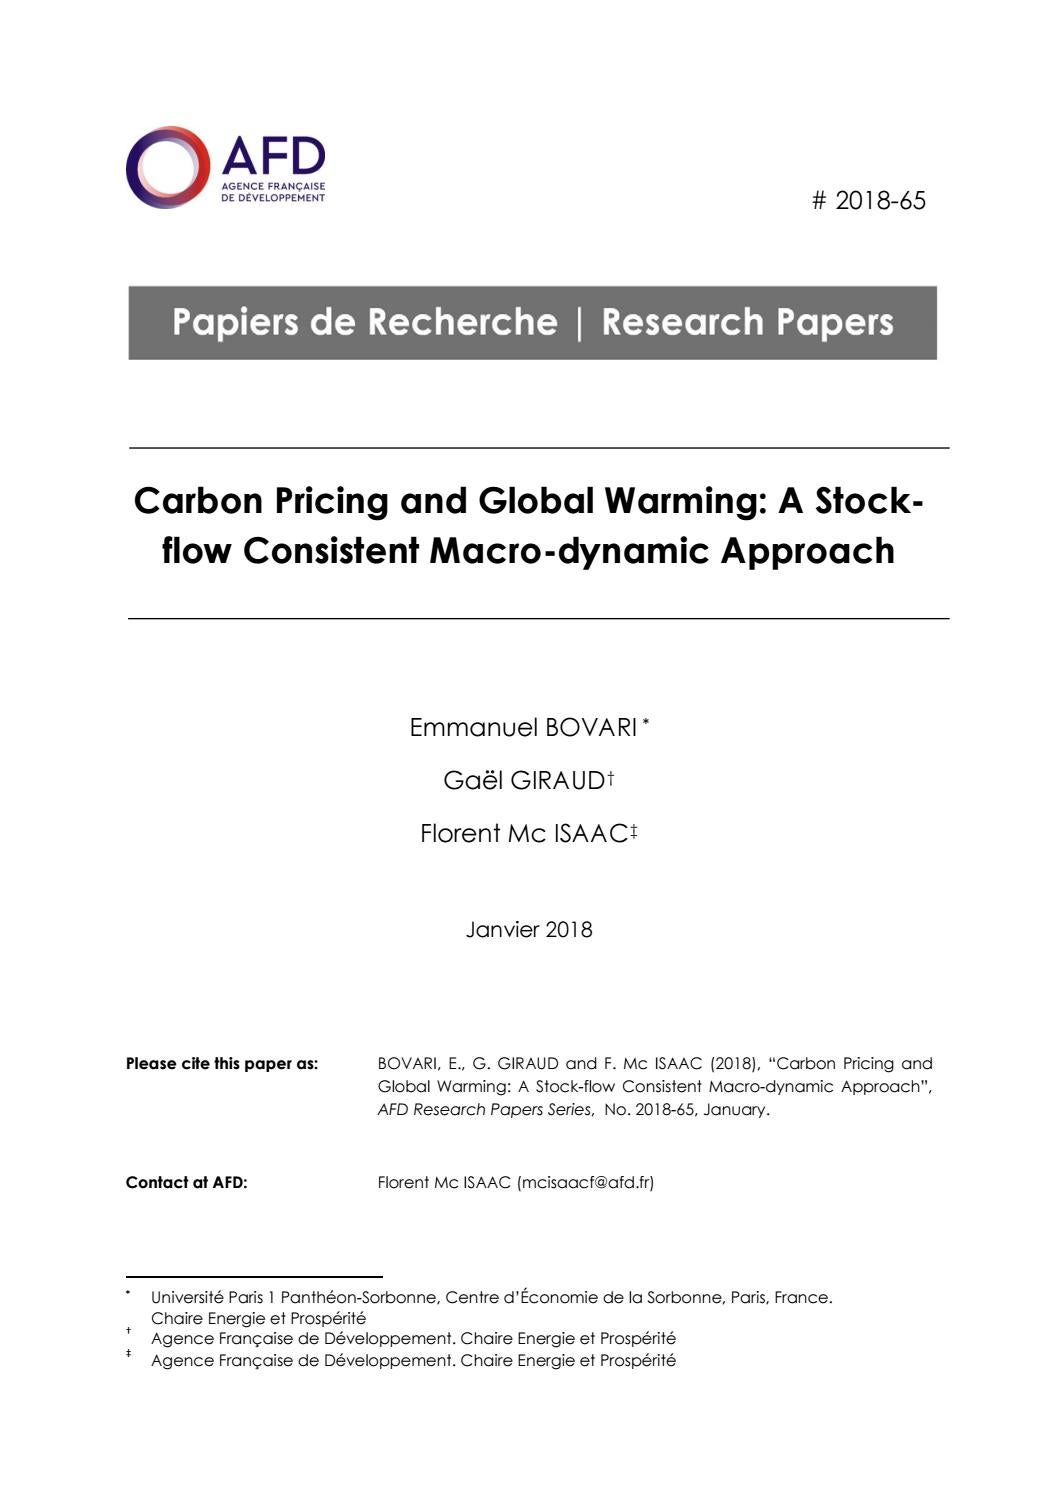 Carbon Pricing and Global Warming: A Stock-flow Consistent